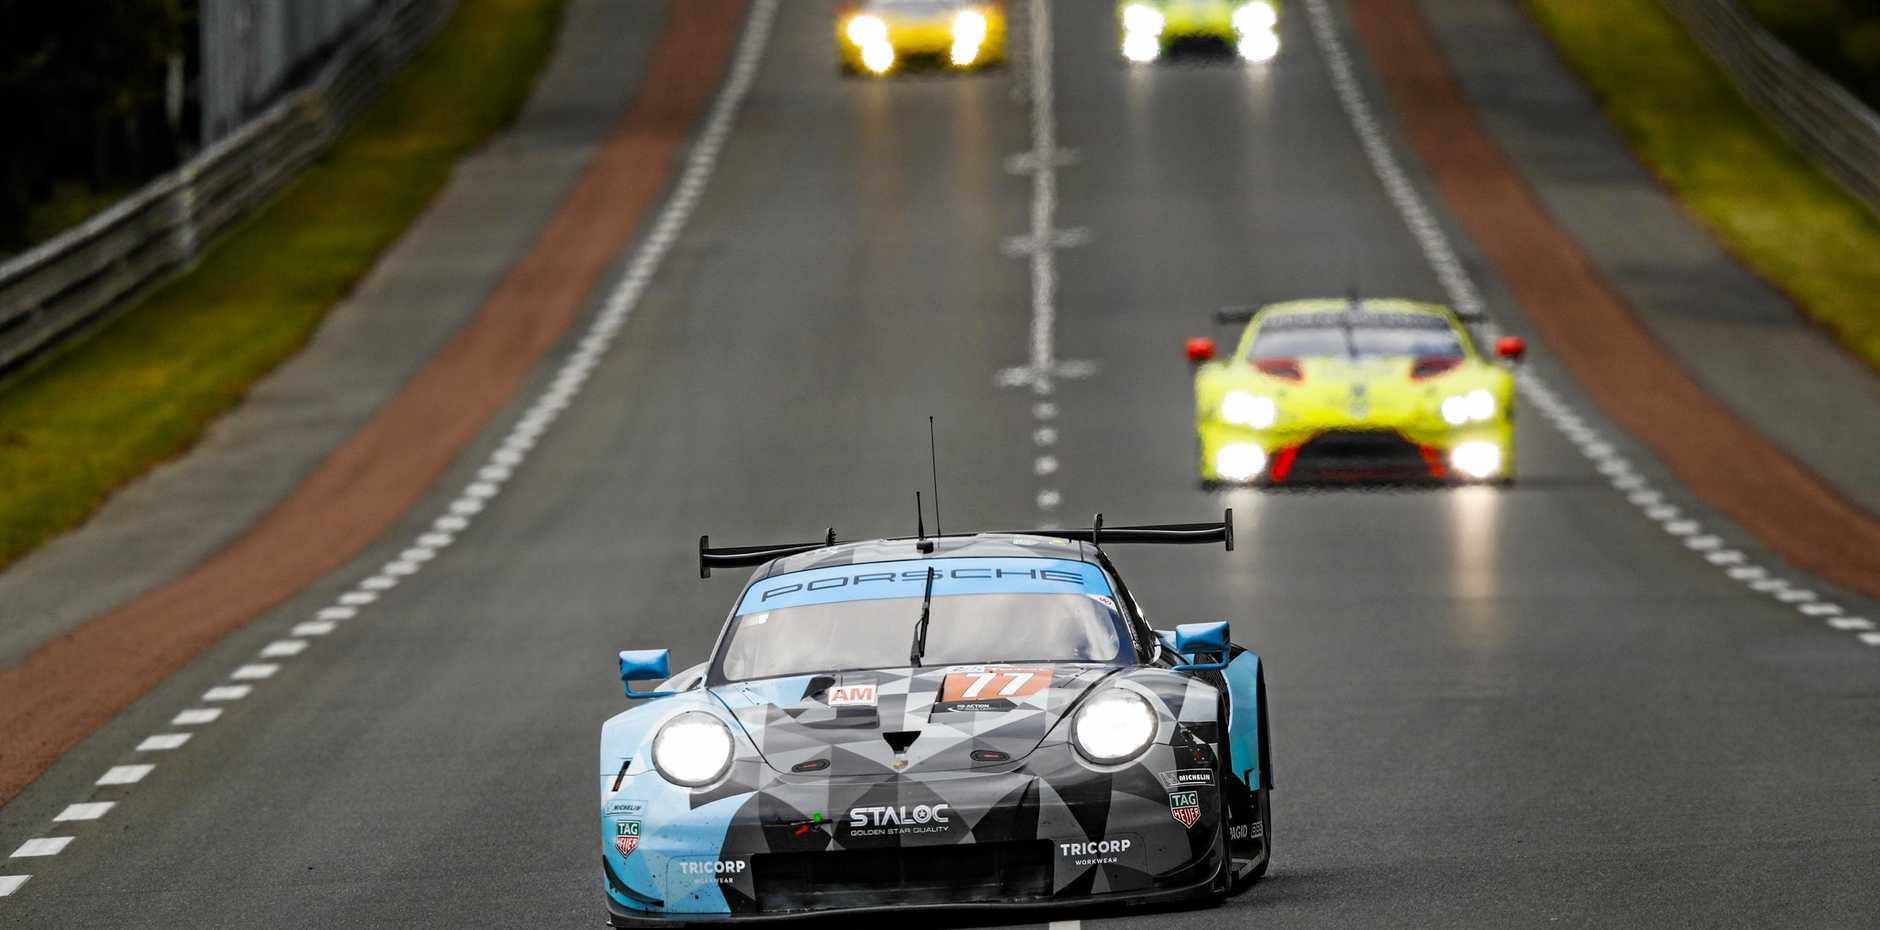 GO: Porsche 911 RSR, Dempsey Proton Racing (77) was driven by Julien Andlauer, Matt Campbell and Christian Ried in the 24 Hours of Le Mans.